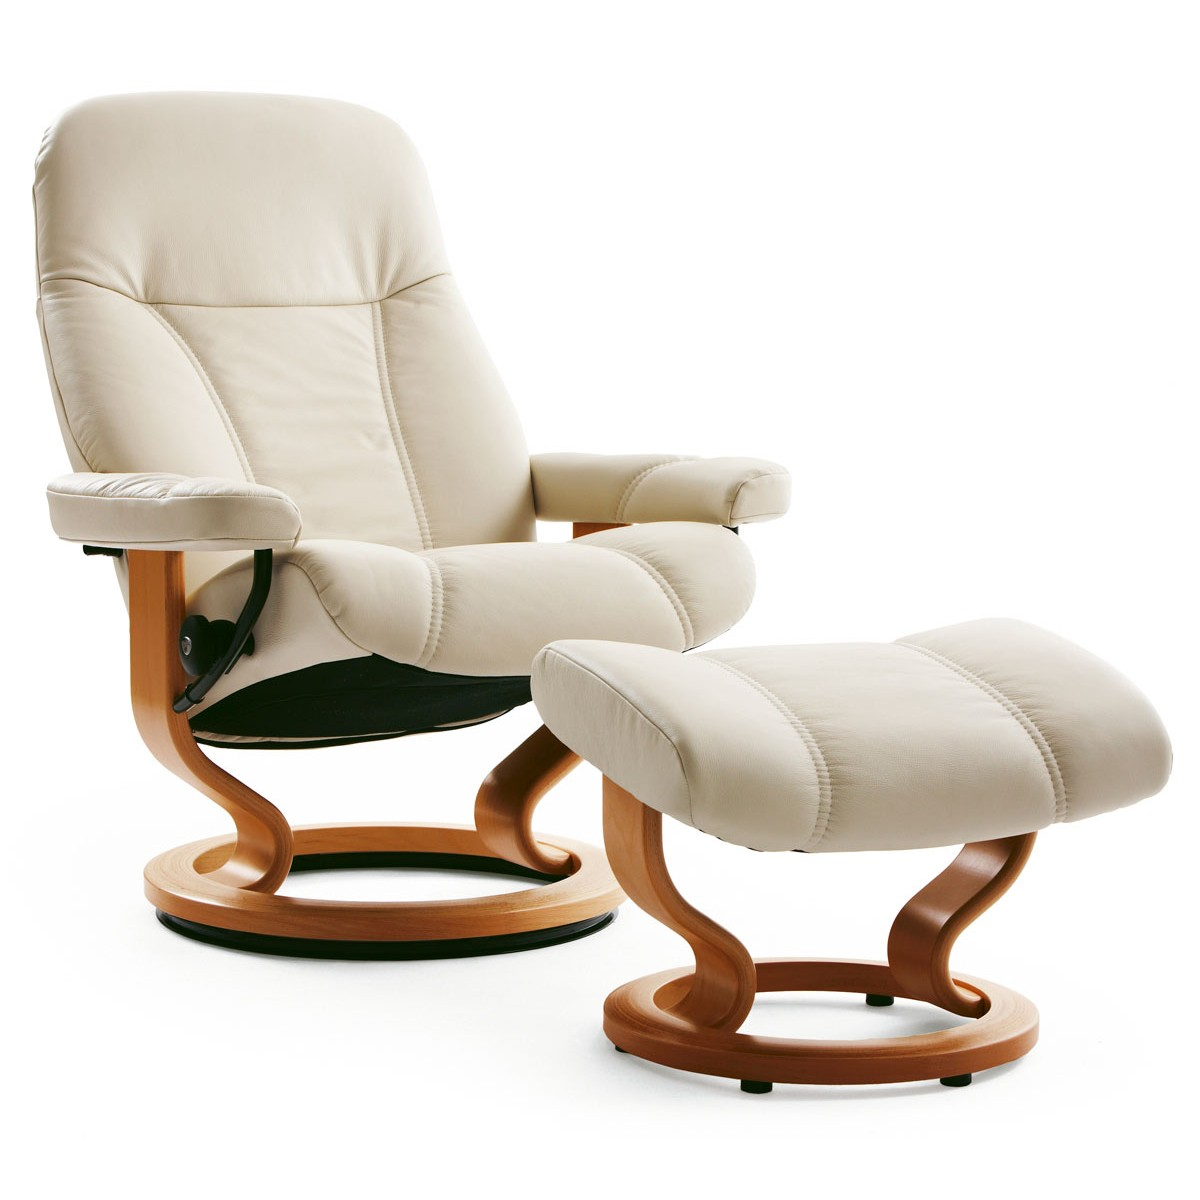 500 Off Signature And Legcomfort Recliners Or Free Accessory With All Stressless Sofas